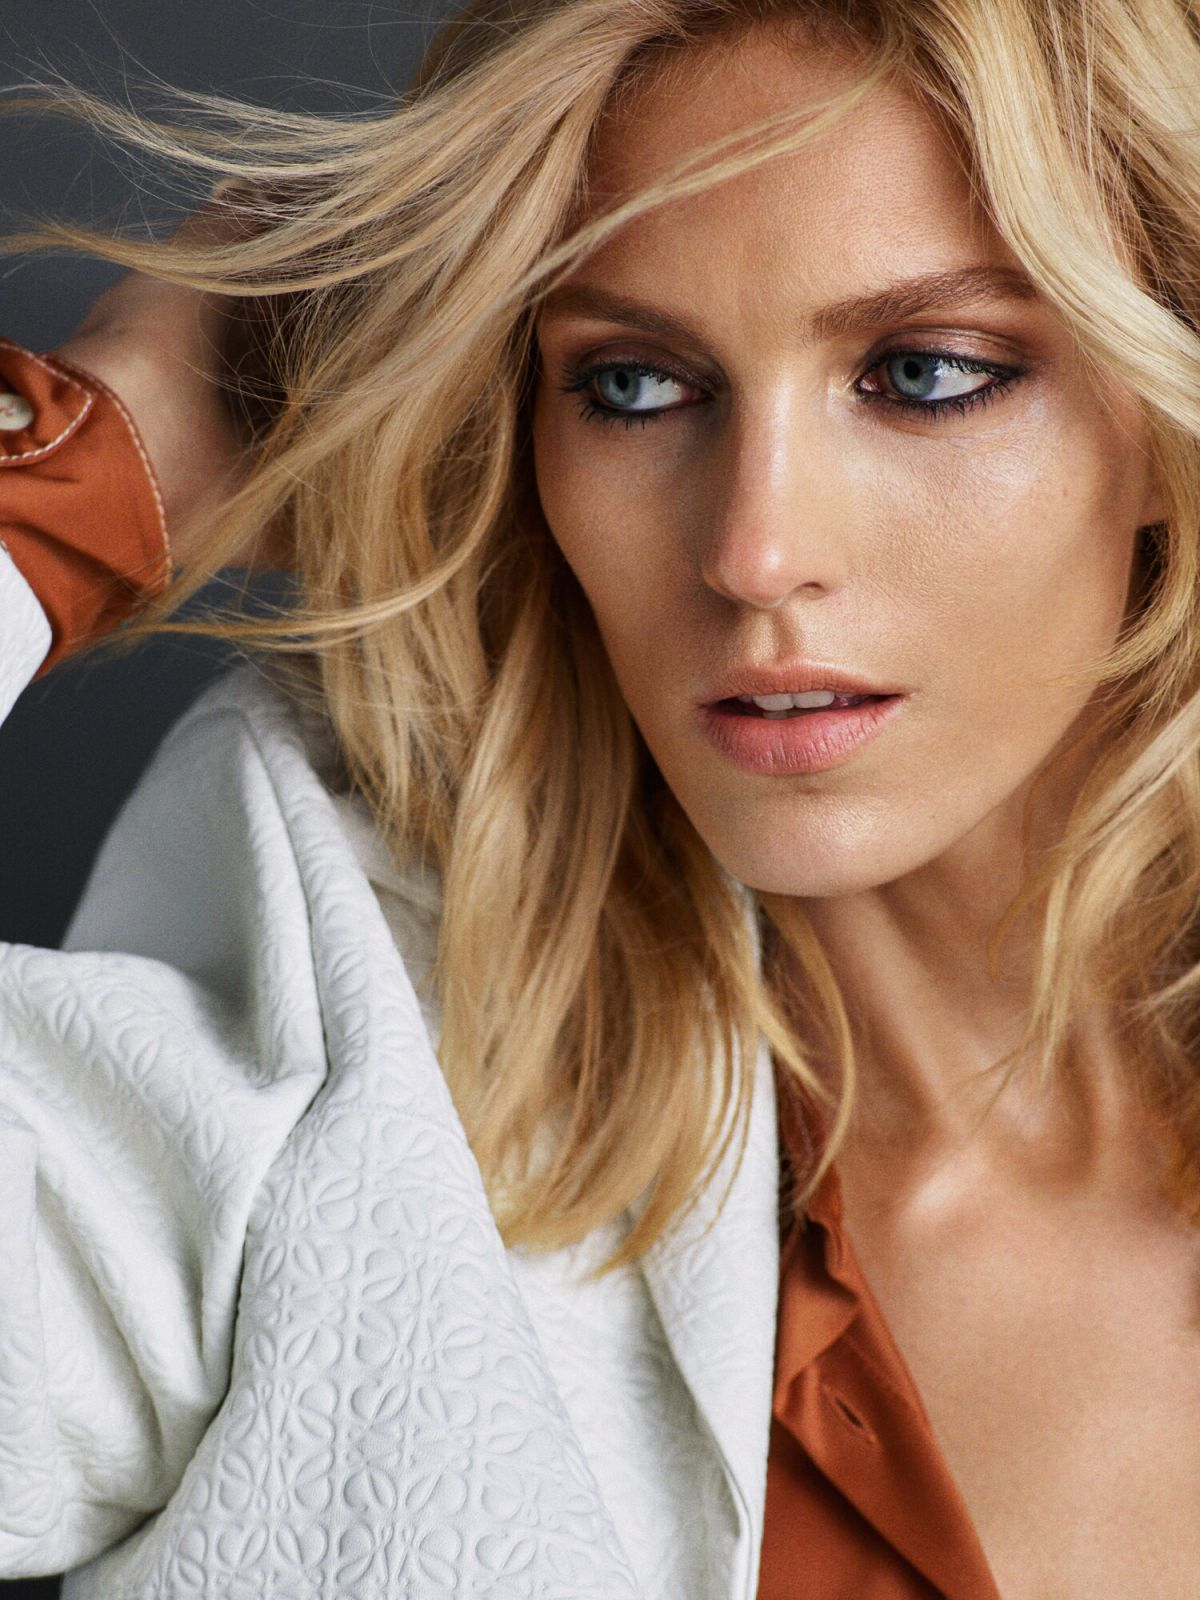 ANJA RUBIK by Hunter & Gatti Photoshoot